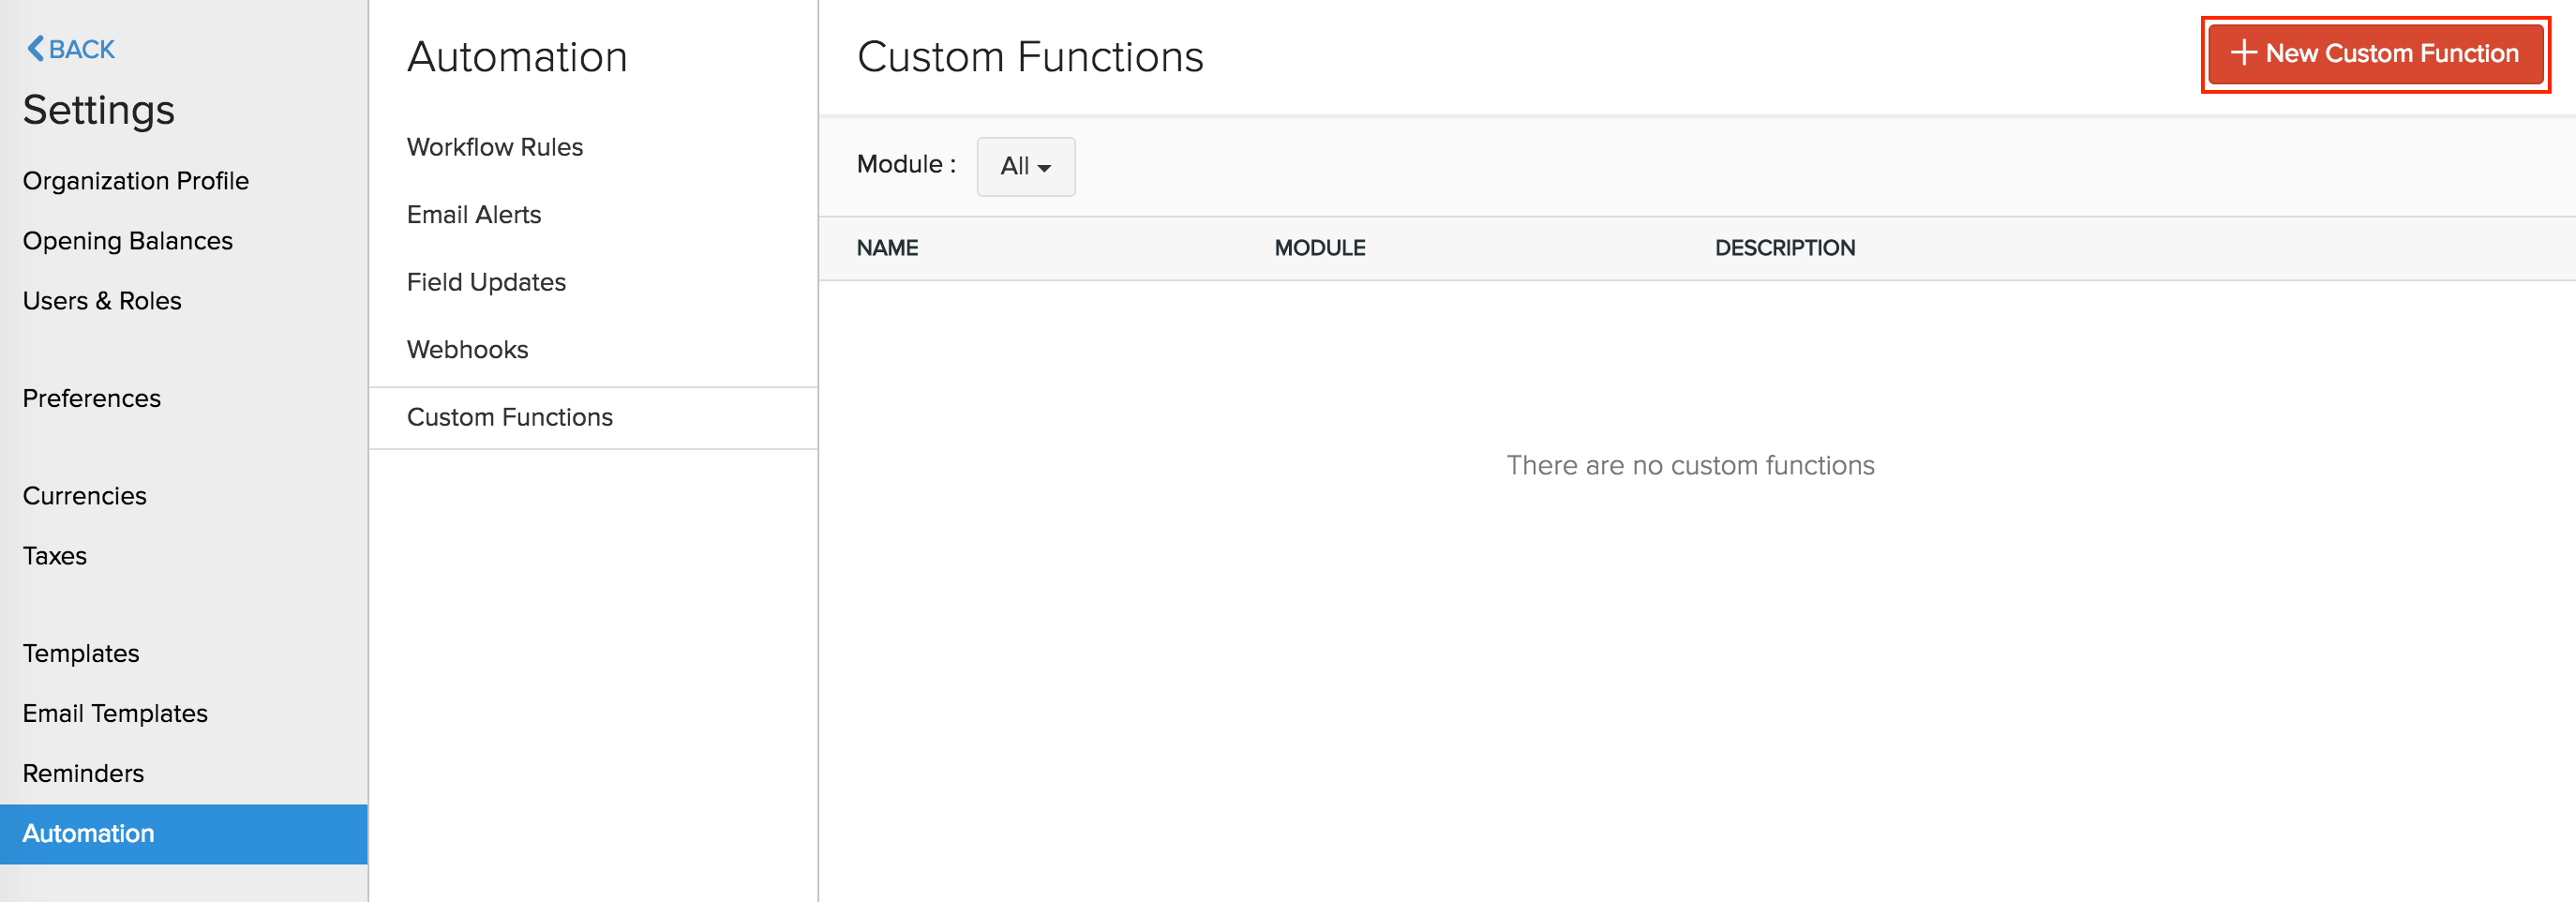 New Custom function button